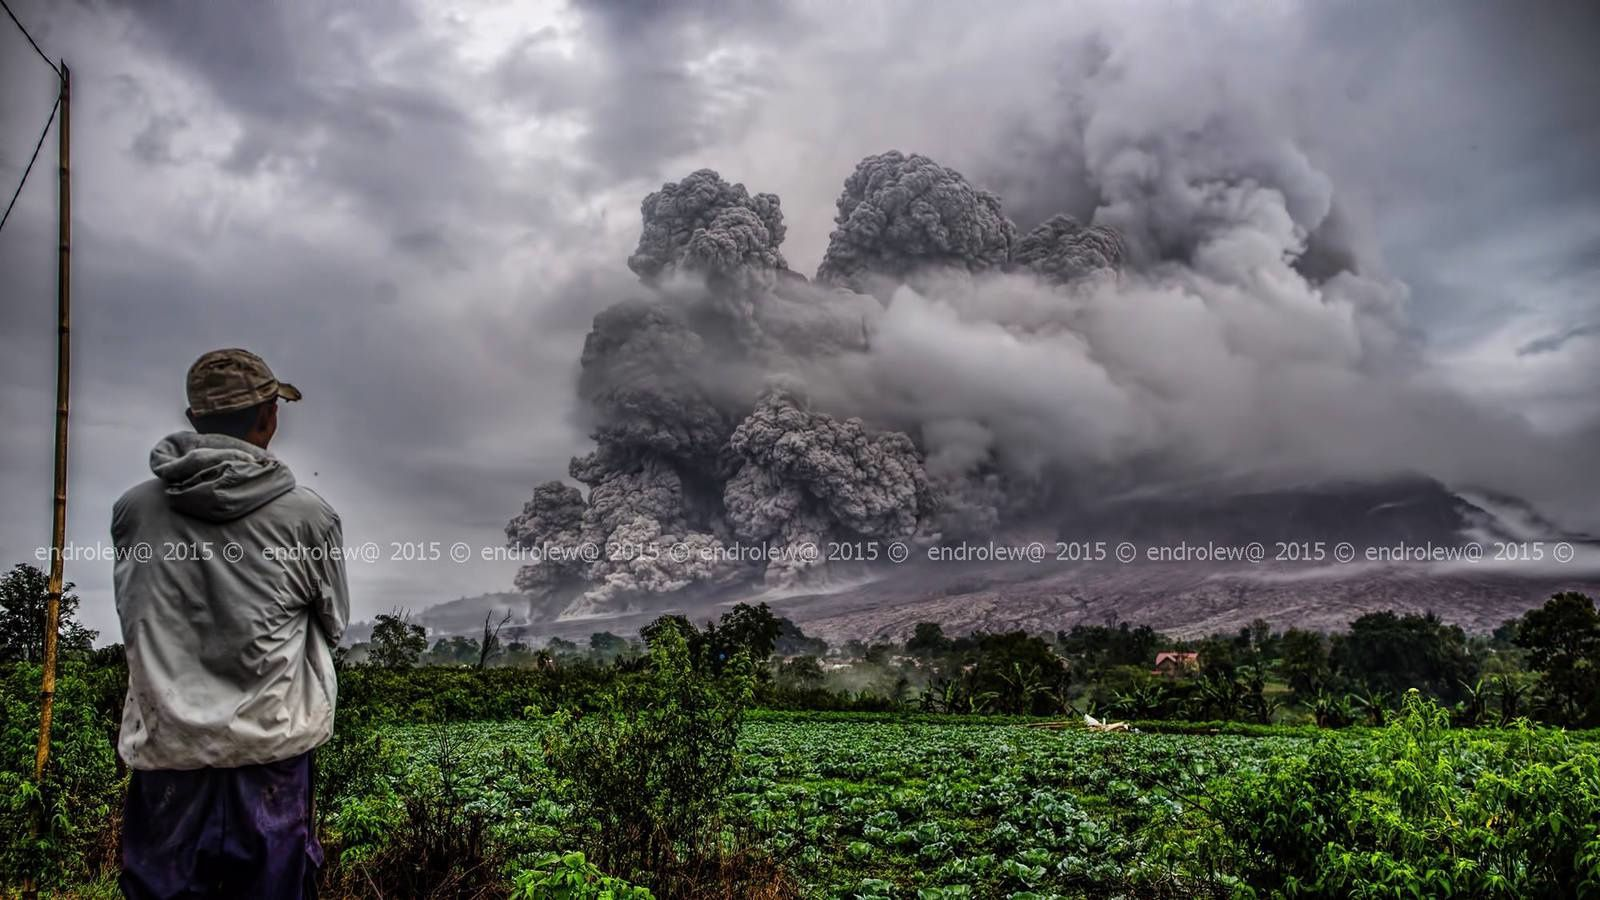 Sinabung - pyroclastic flow of 28.04.2015 / 5:34 p.m. - photo Endrolew @